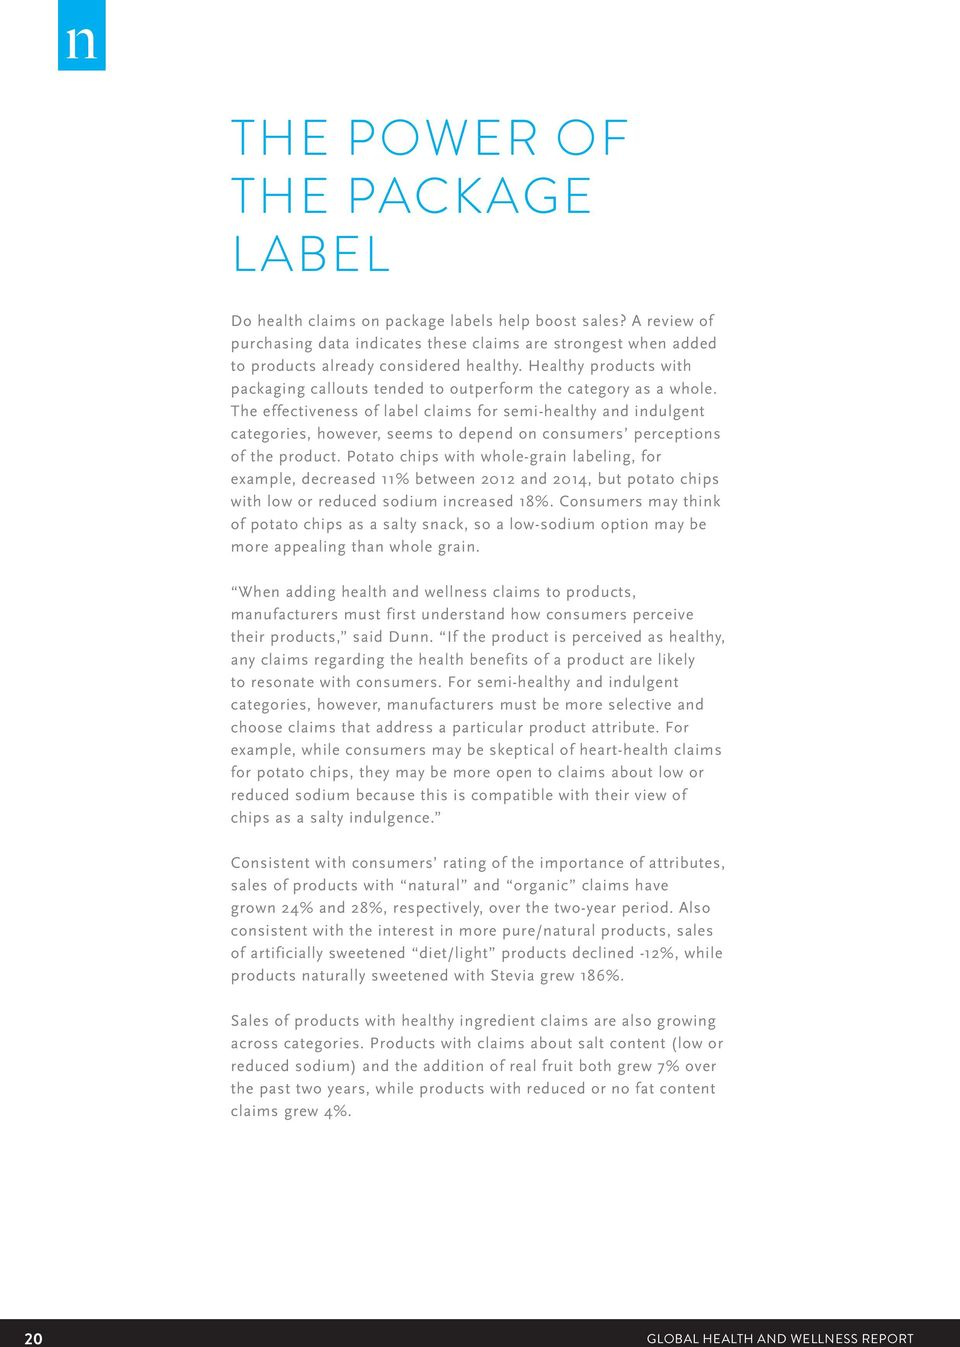 The effectiveness of label claims for semi-healthy and indulgent categories, however, seems to depend on consumers perceptions of the product.